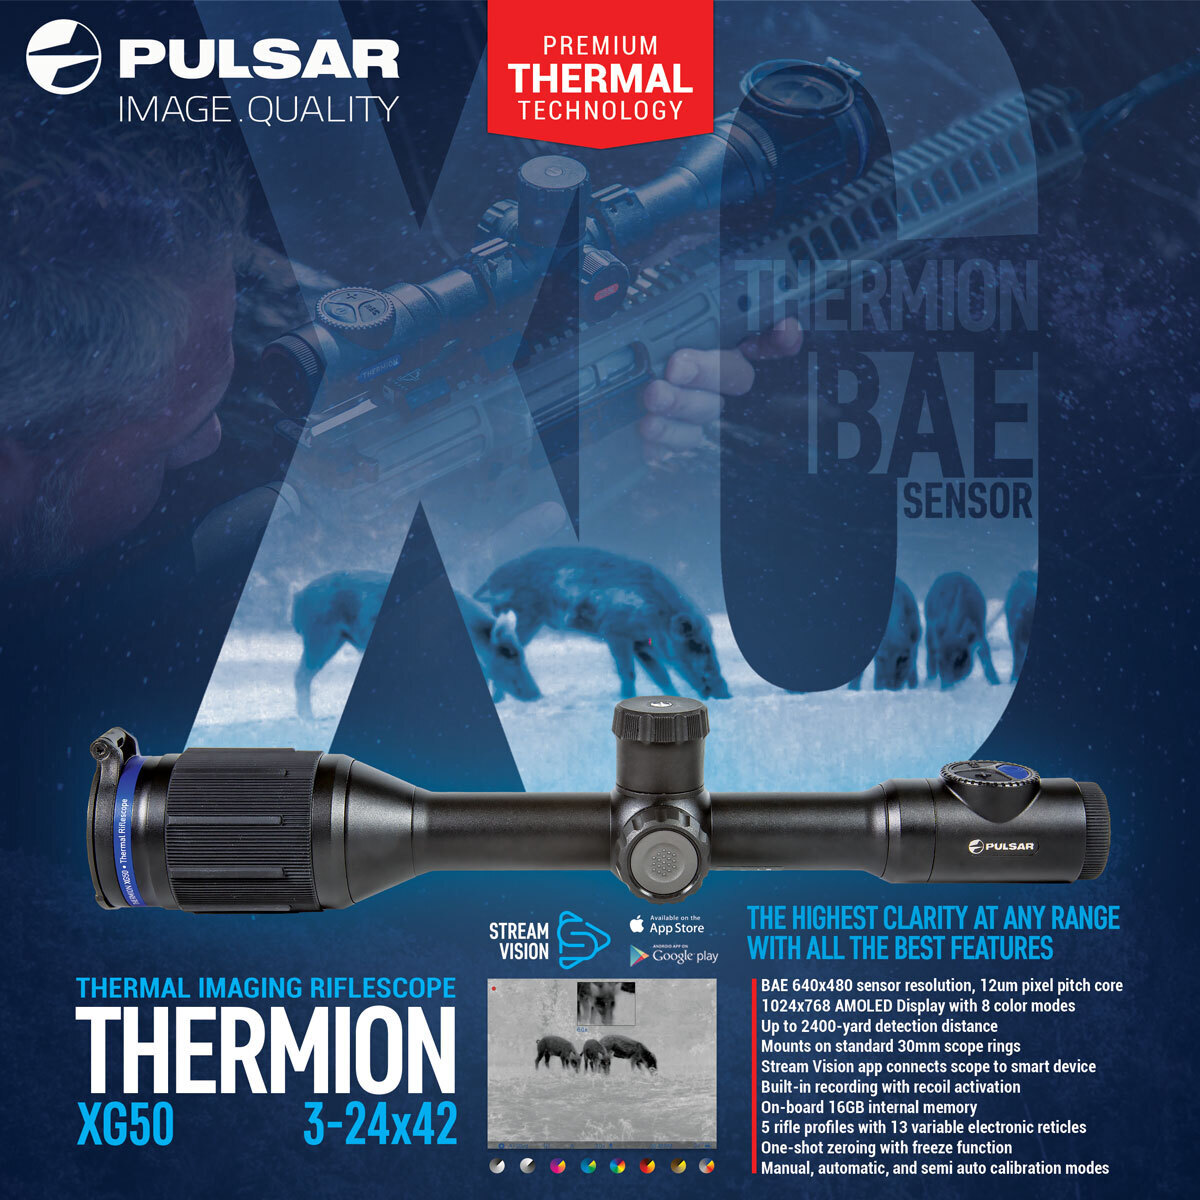 Thermion XG50 Thermal Imaging Riflescope